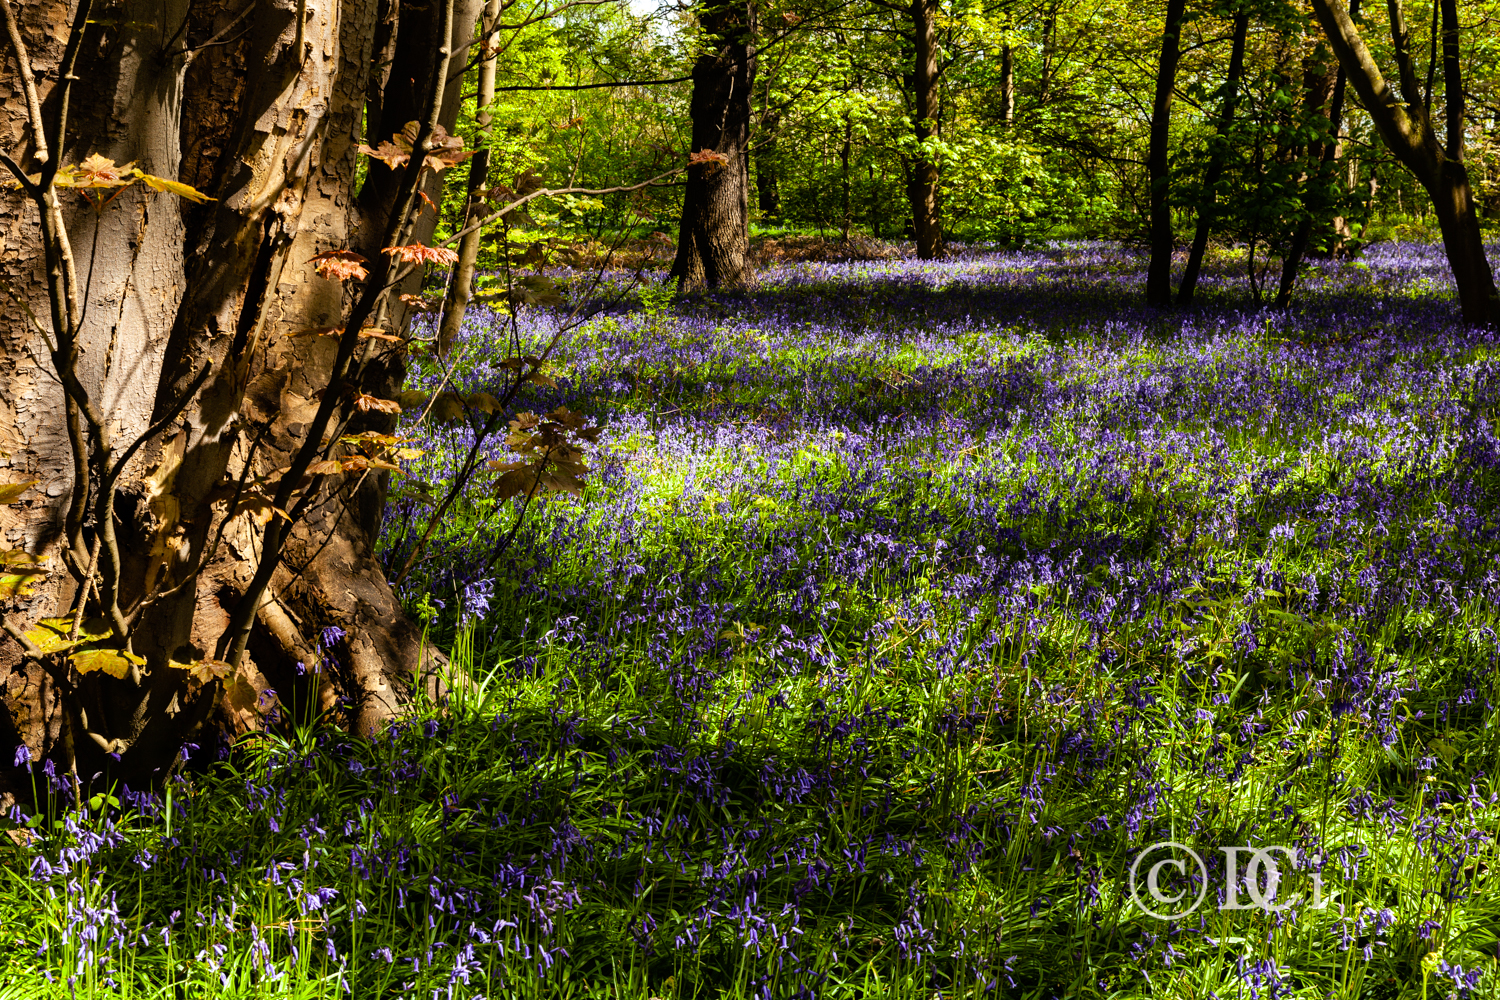 One of the images from the bluebell day out.